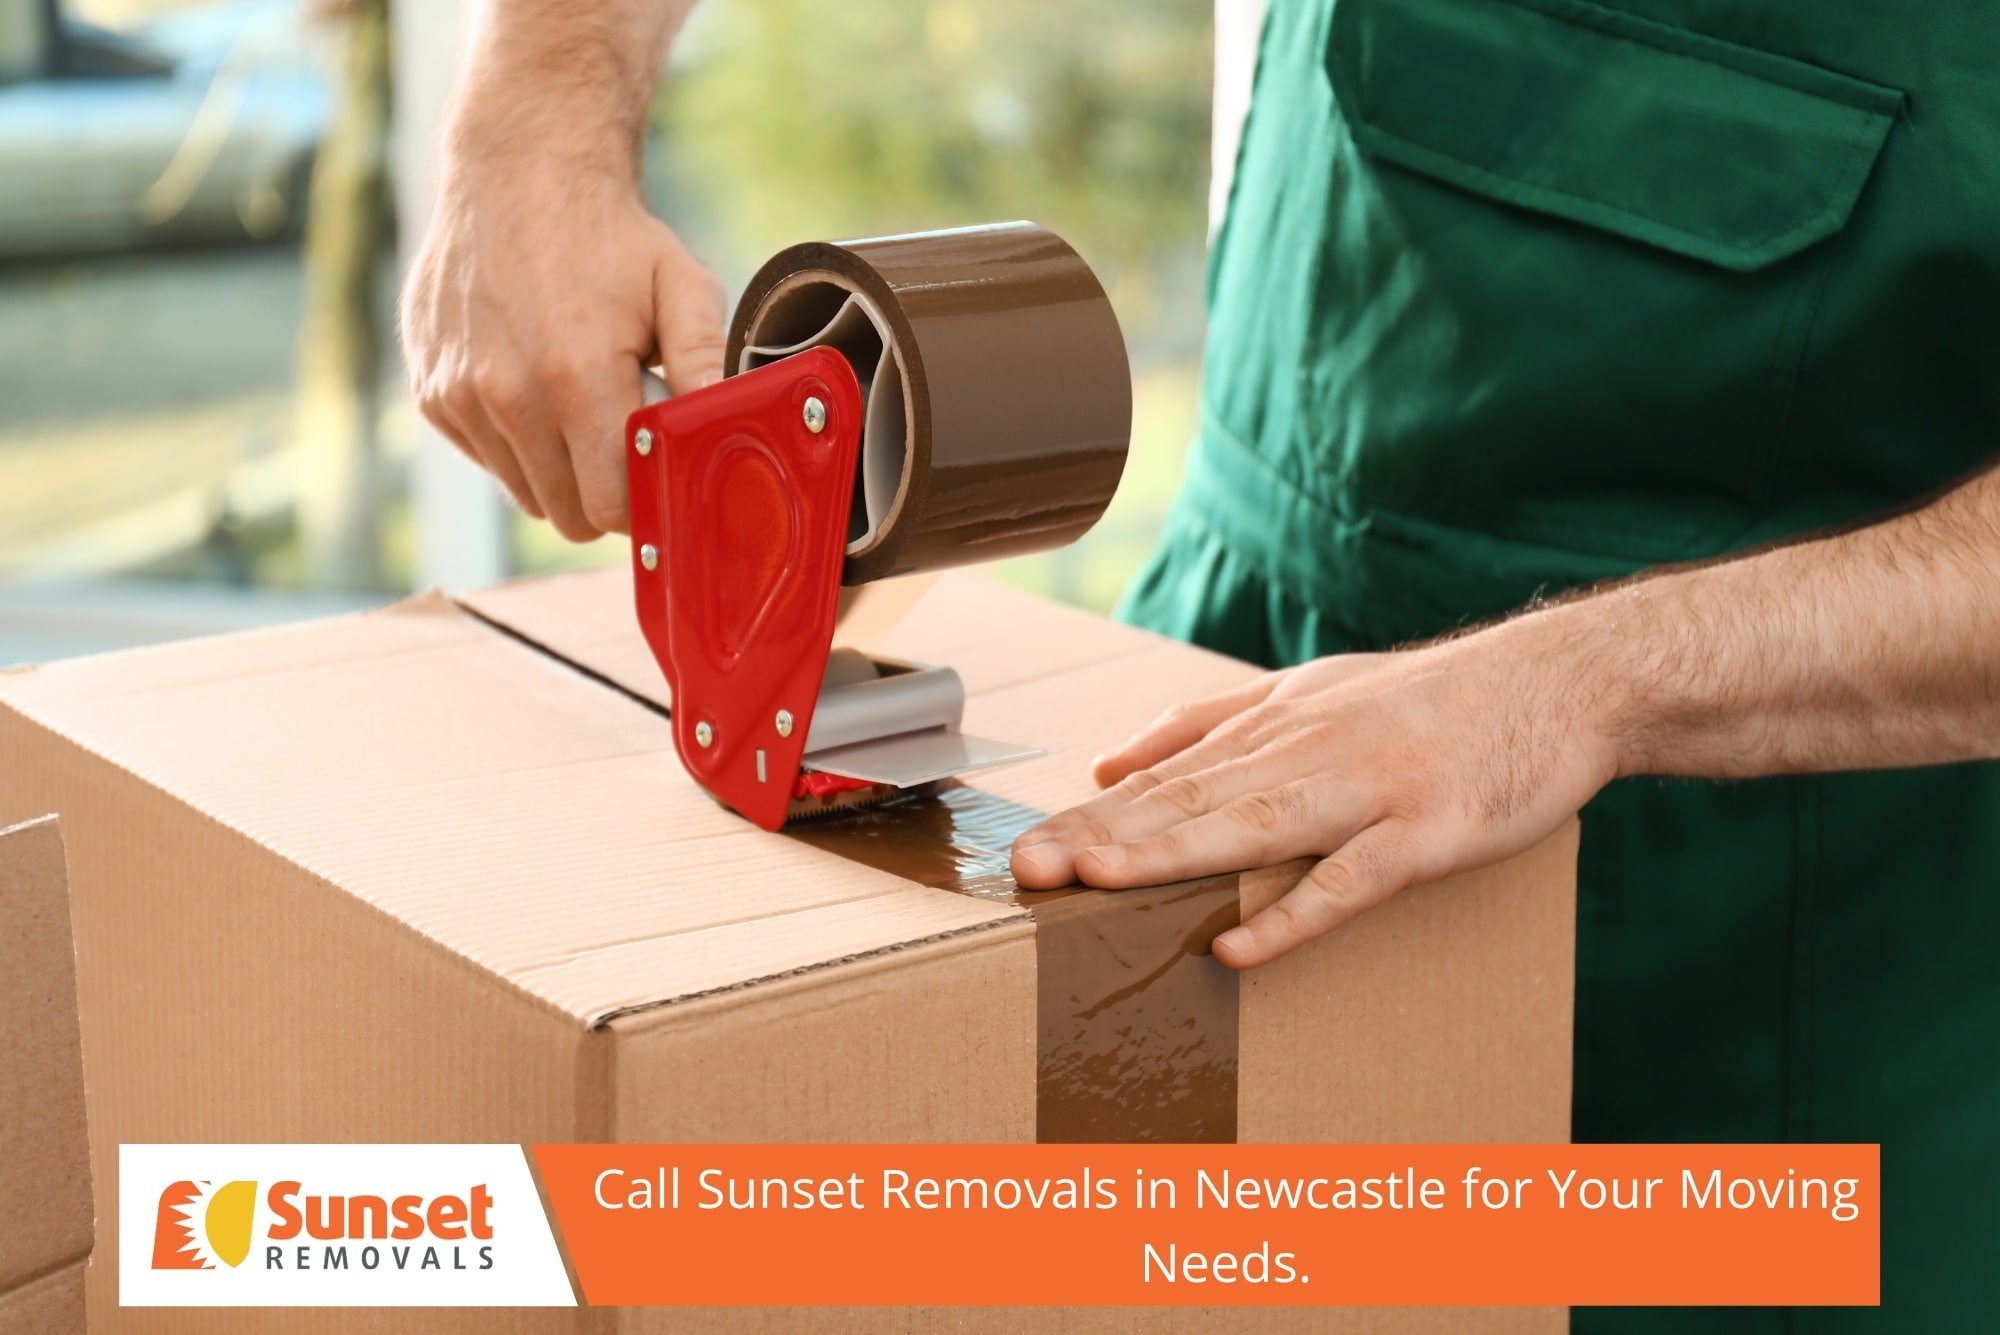 Call Sunset Removals in Newcastle for Your Moving Needs.